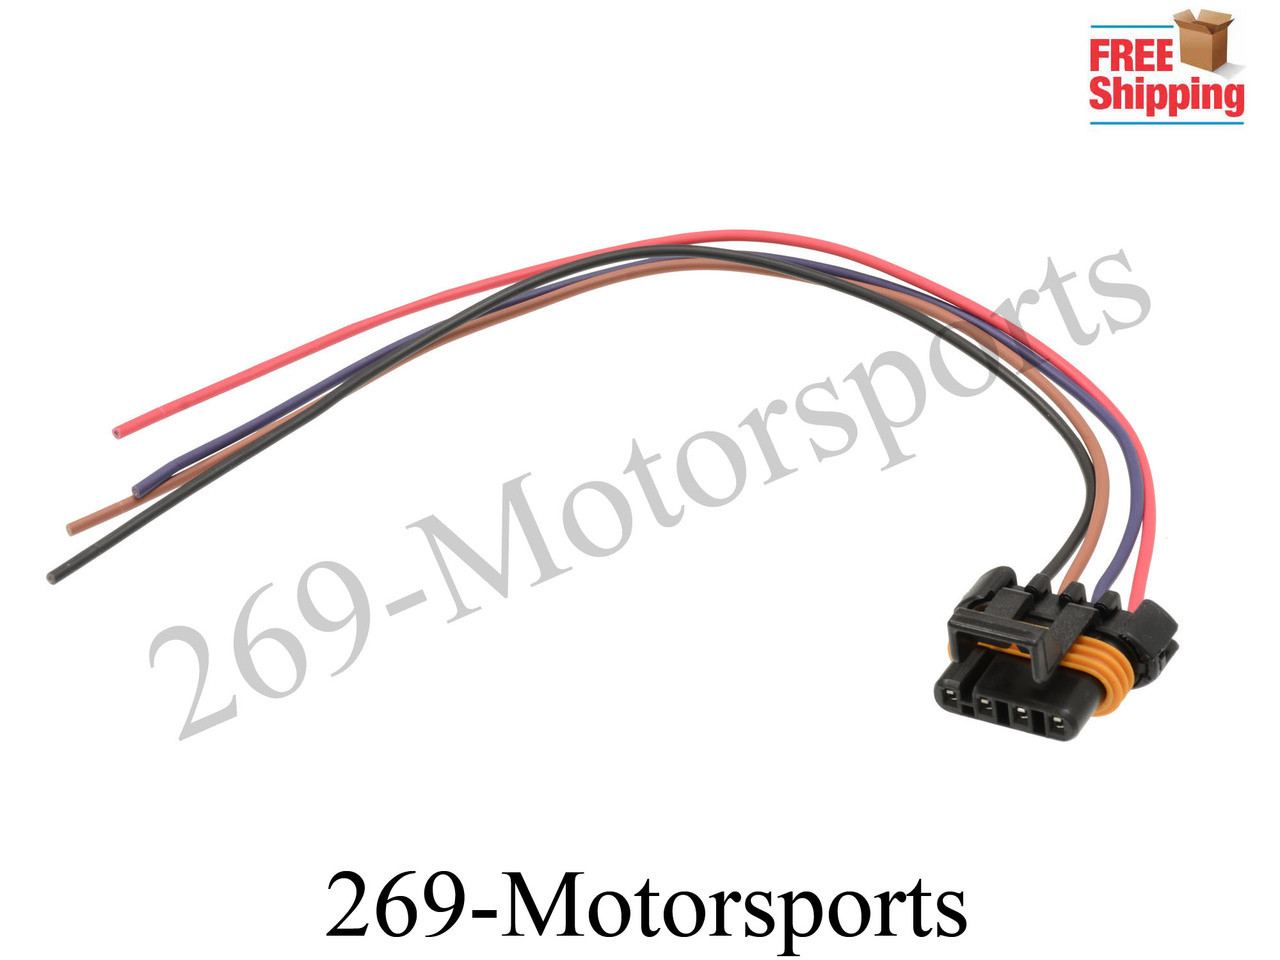 GM Ls1 Wiring Harness Library. O2 Oxygen Sensor Wiring Harness Connector Pigtail For GM Camaro Firebird Ls1 Lt1. Wiring. 5 3 Dbc Standalone Wiring Diagram At Scoala.co